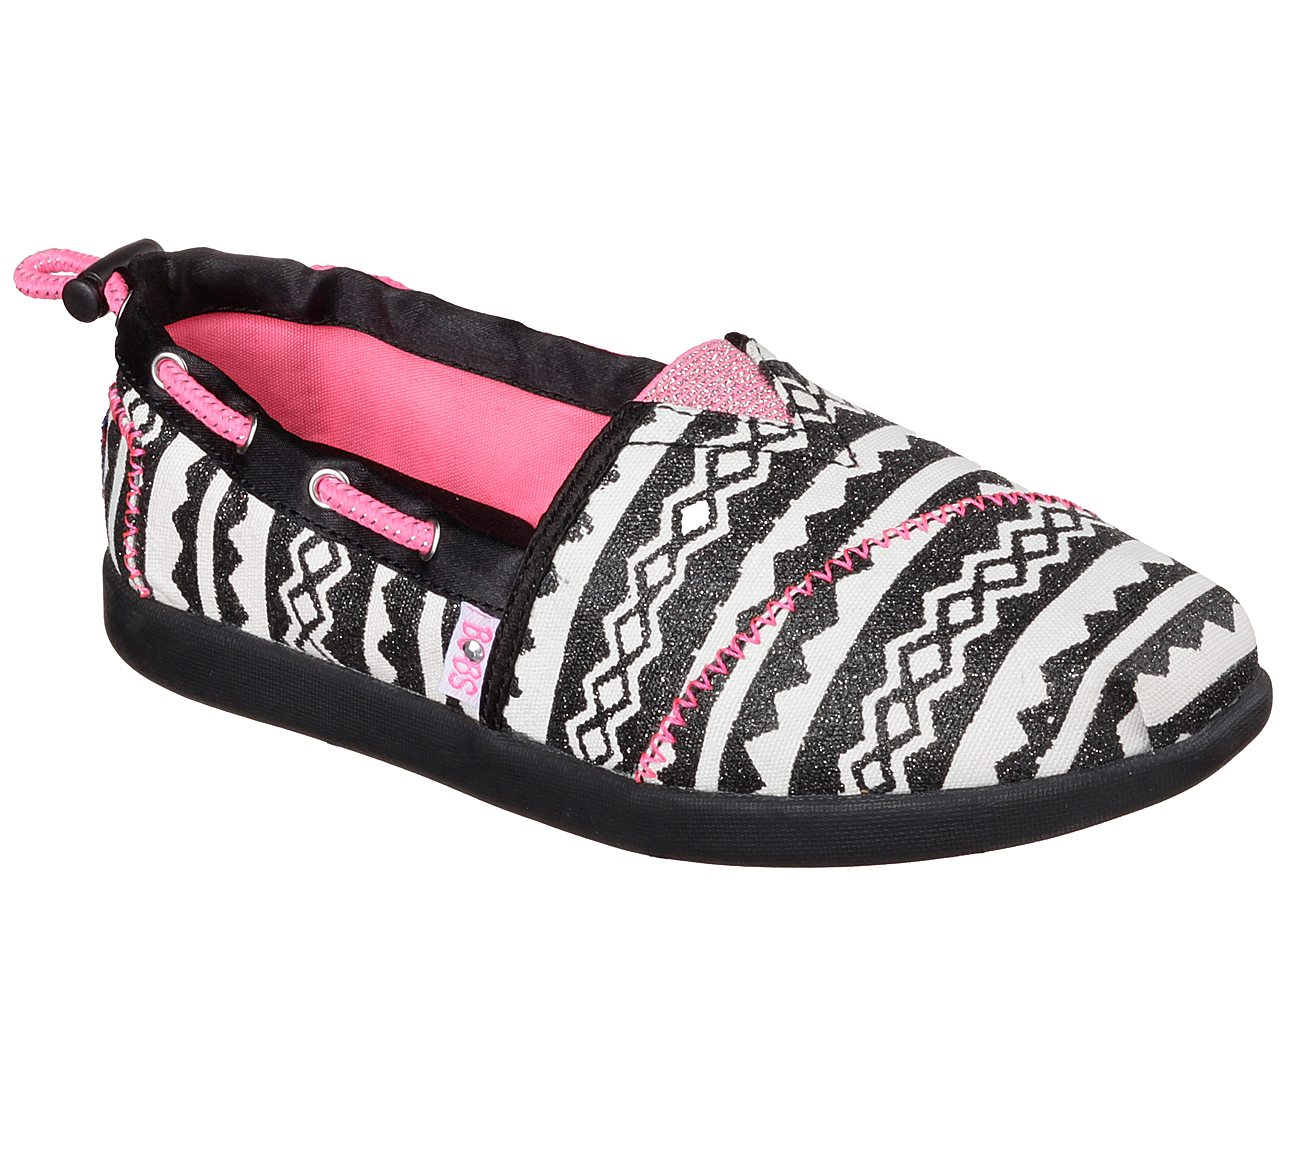 efdb684bce27 Buy SKECHERS Bobs World - Aztec Princess BOBS Shoes only  27.00